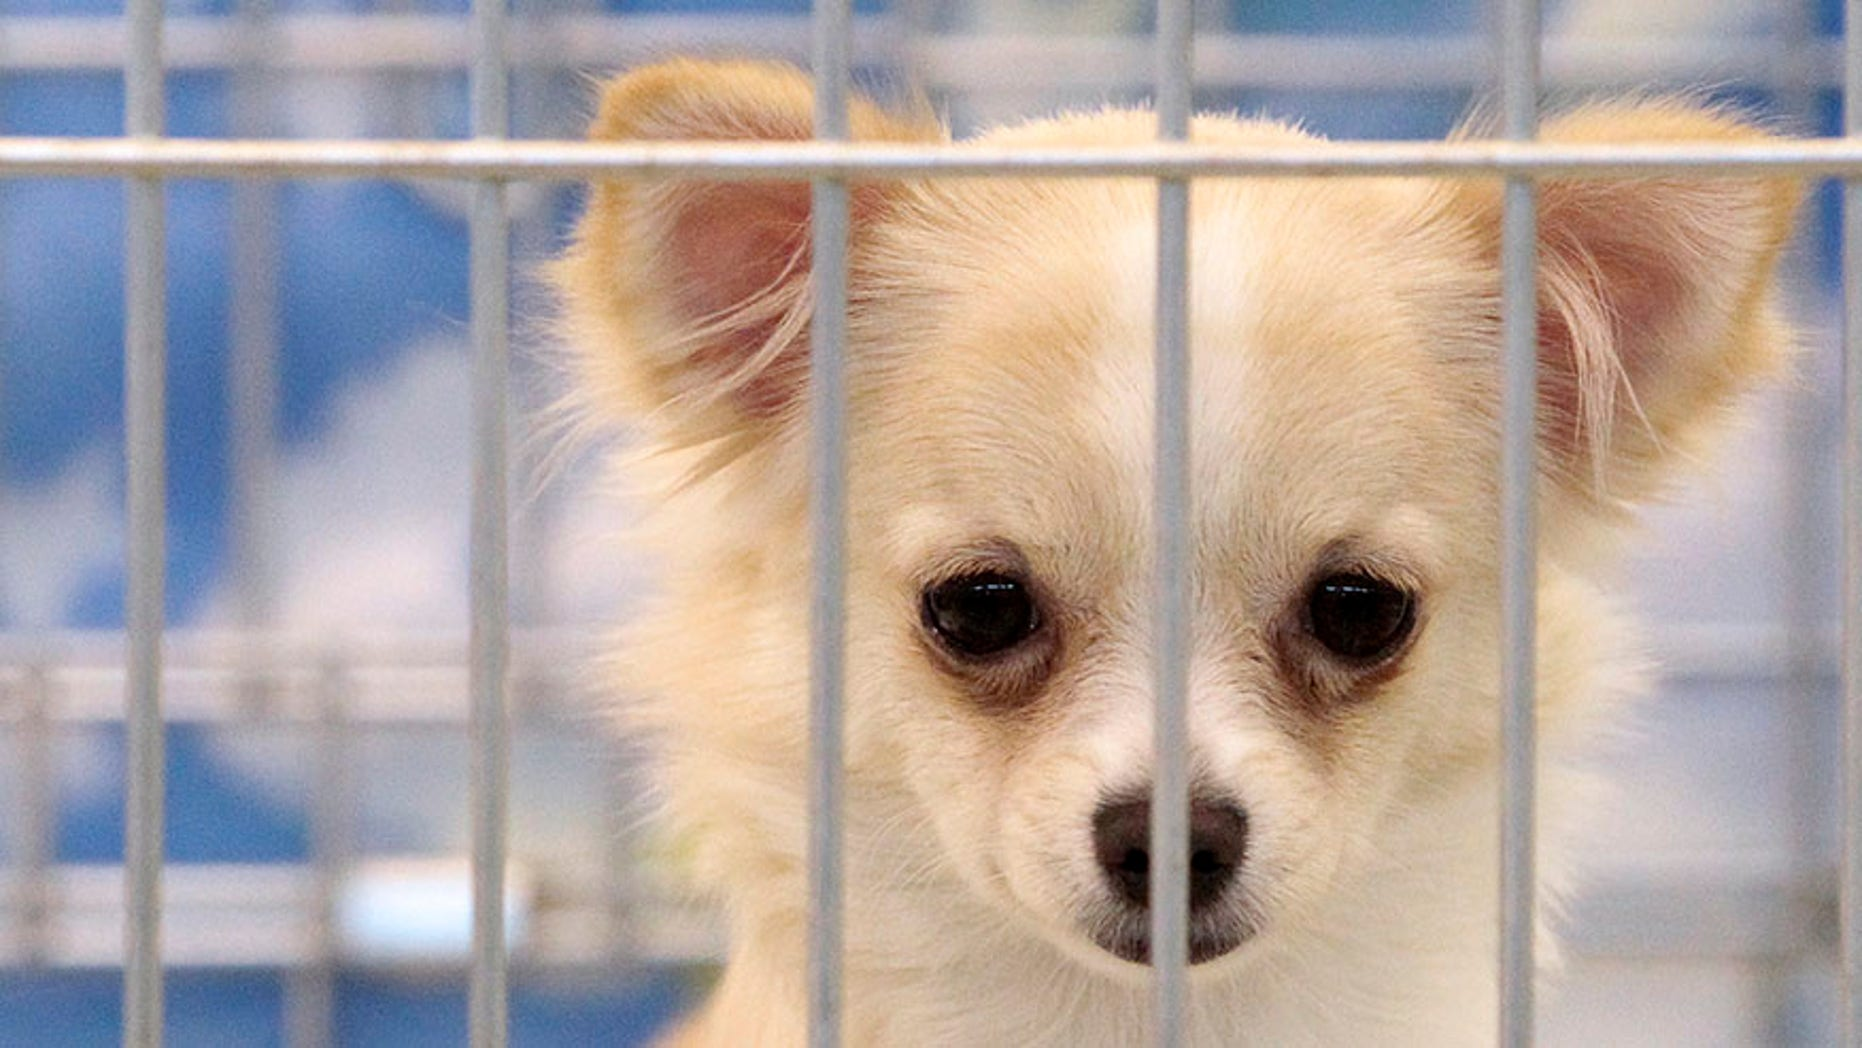 A Chihuahua looks on inside a cage during a dog show in Moscow, December 19, 2010.  REUTERS/Alexander Natruskin  (RUSSIA - Tags: ANIMALS SOCIETY) - RTXVVSJ